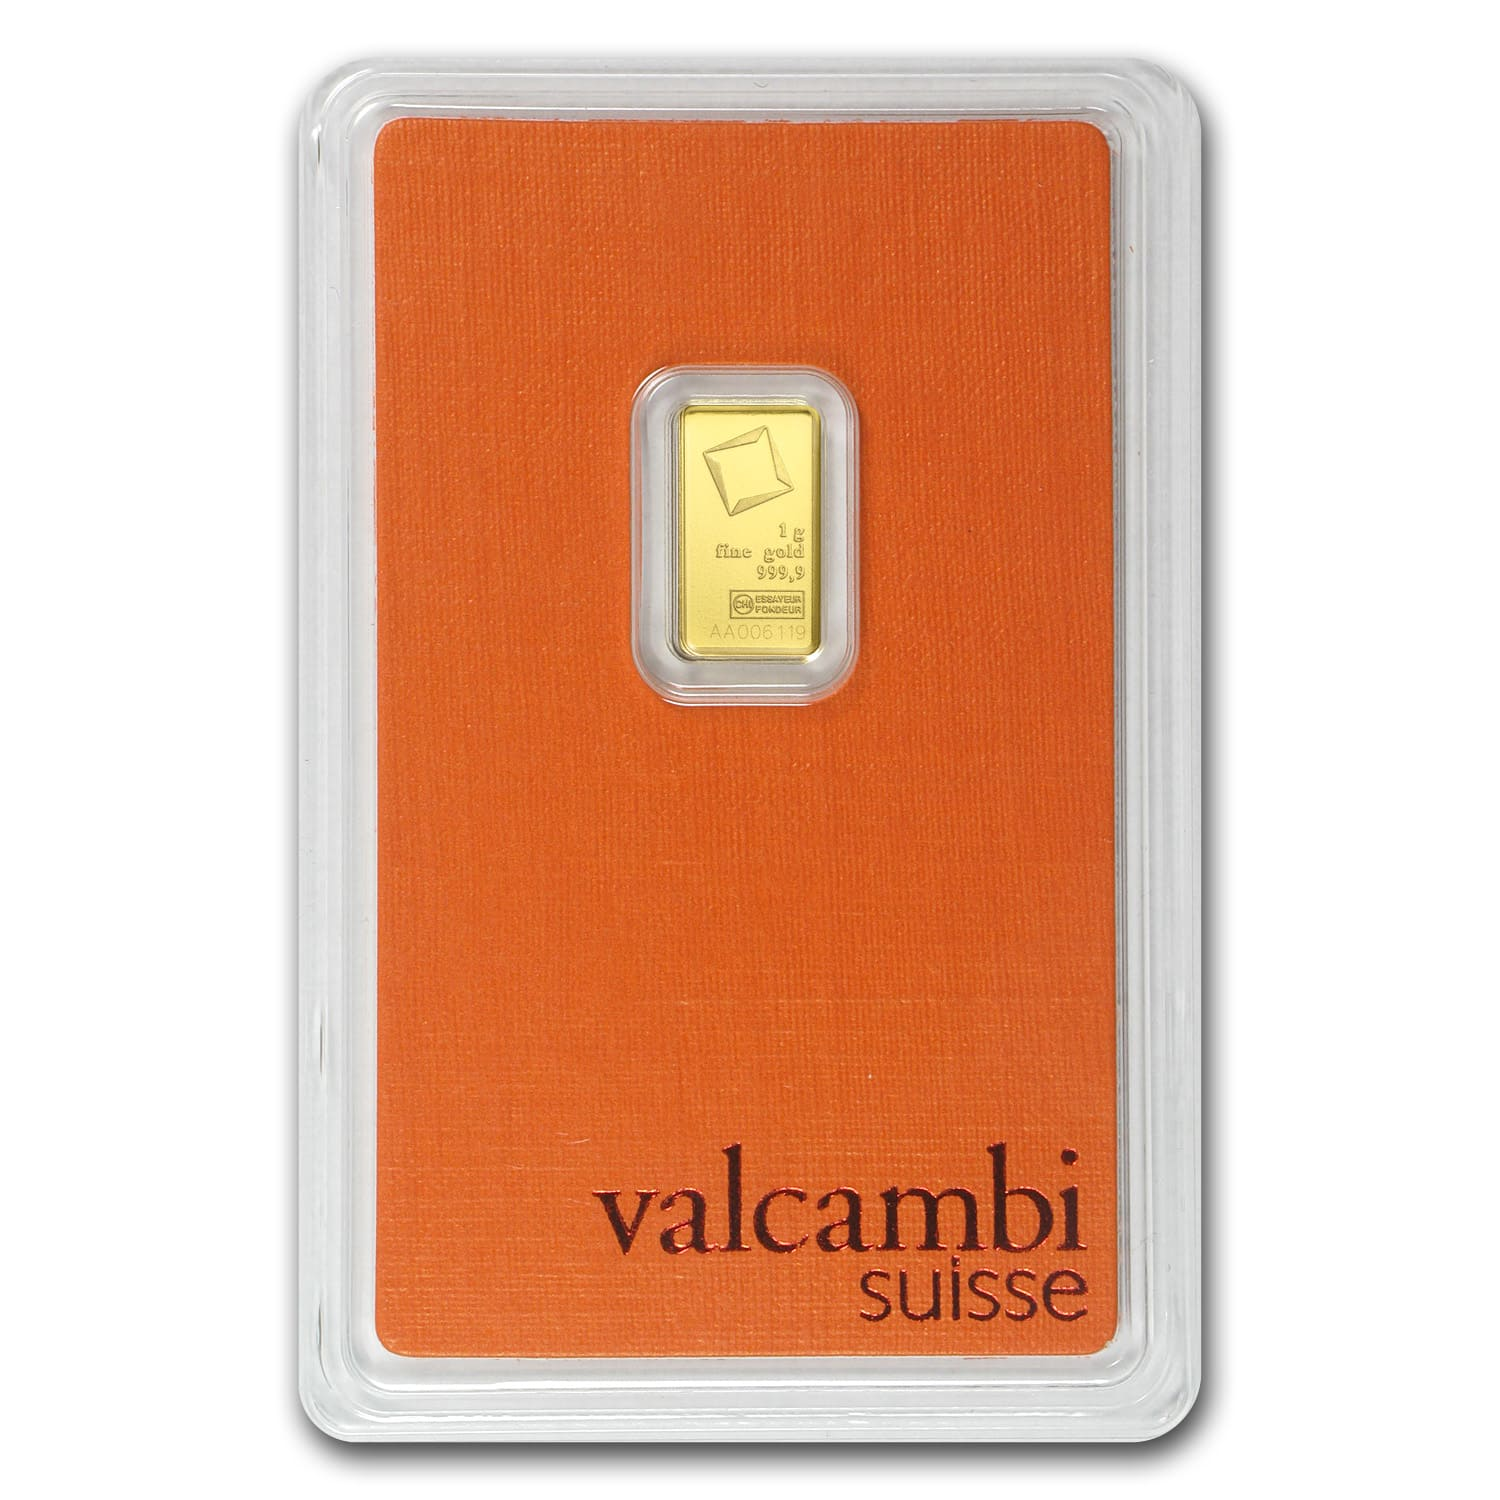 1 gram Gold Bars - Valcambi (In Assay)